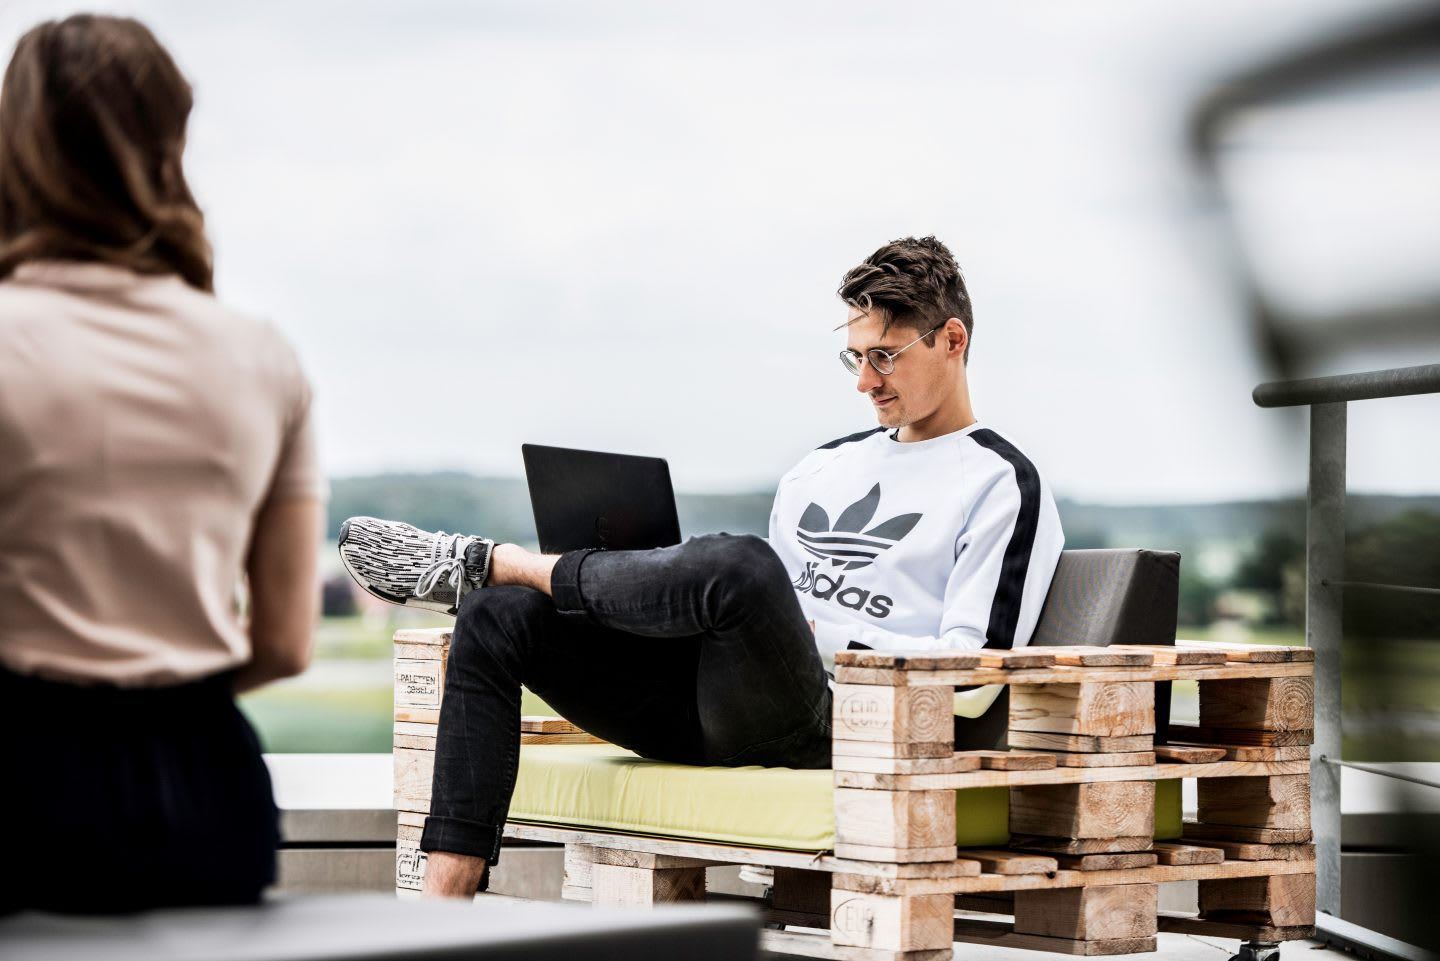 Man working on his laptop in an outdoor working space. adidas, working, workspace, digital, technology